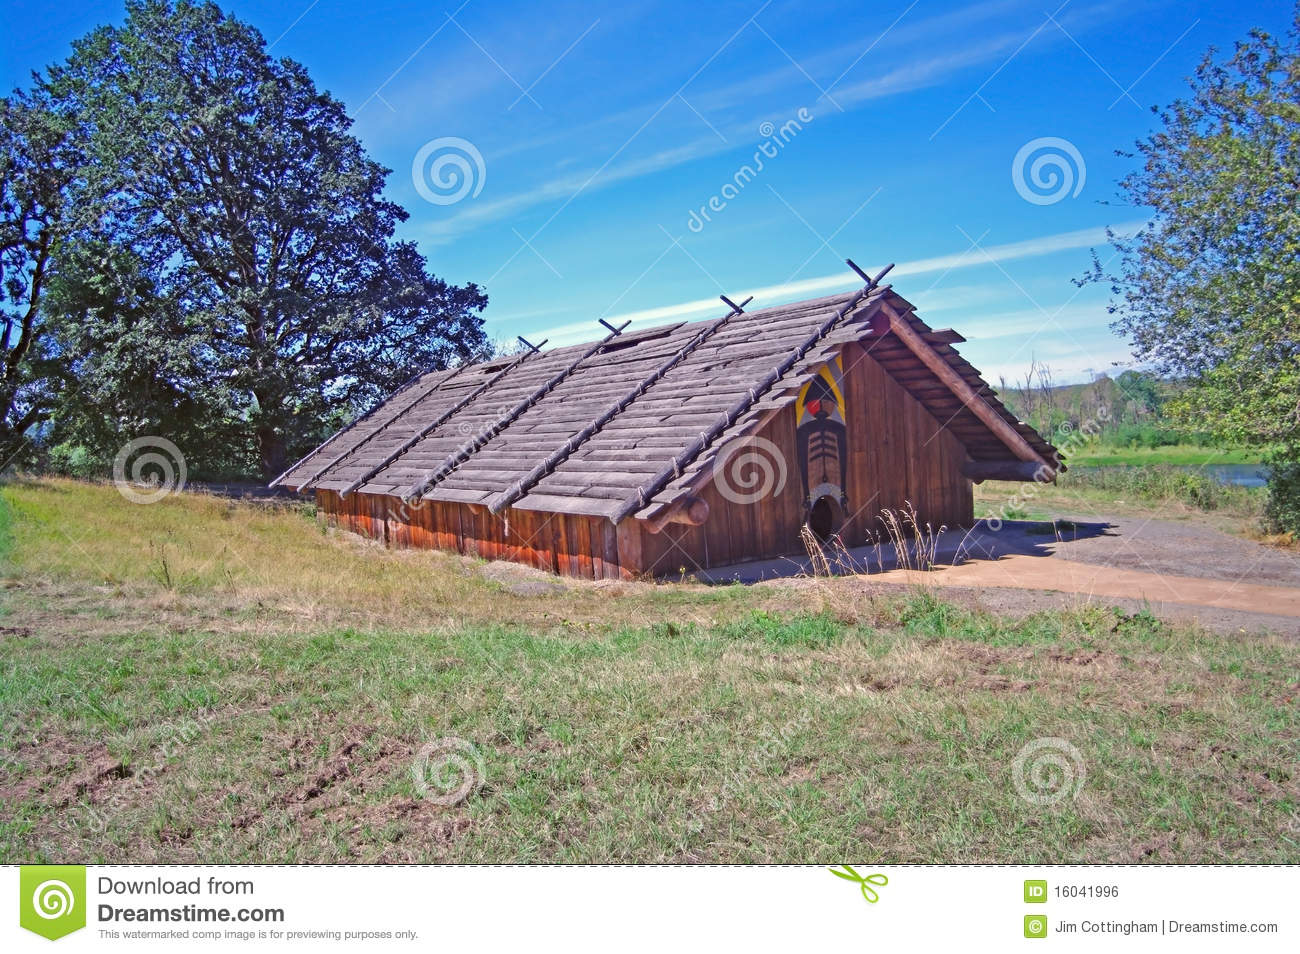 Chinook Indian Cedar Plankhouse Stock Photo  Image 16041996